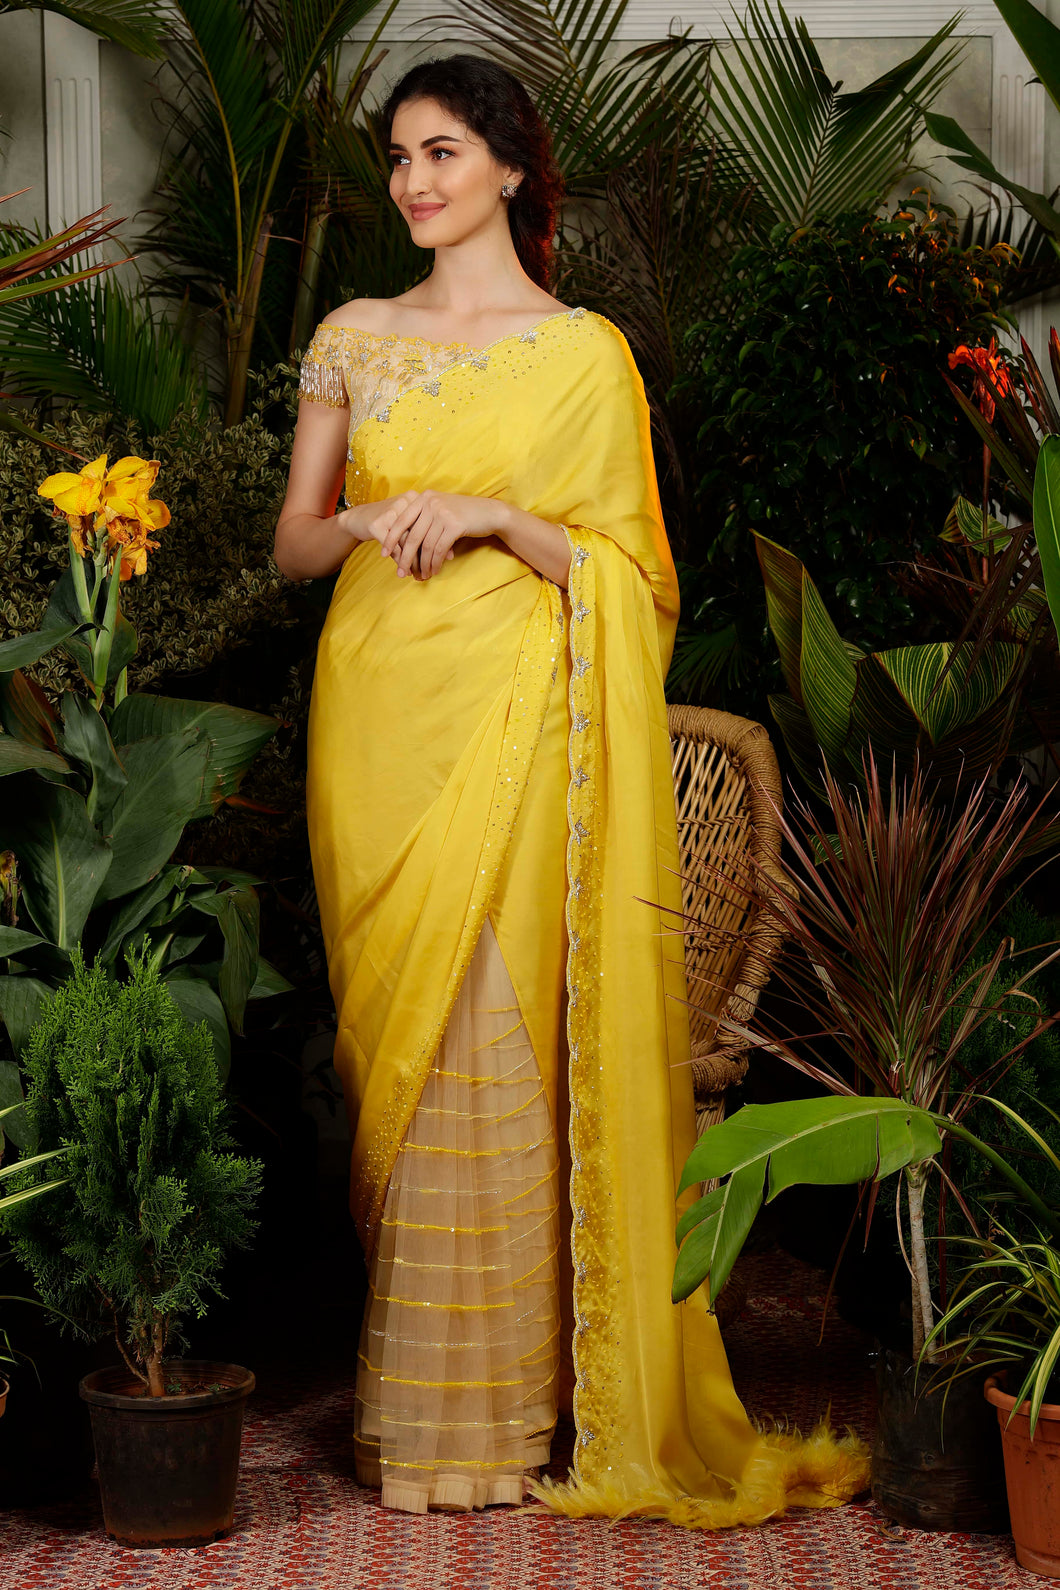 IS-CU-255 Yellow Cutwork Saree with Half Shoulder Fringes Blouse